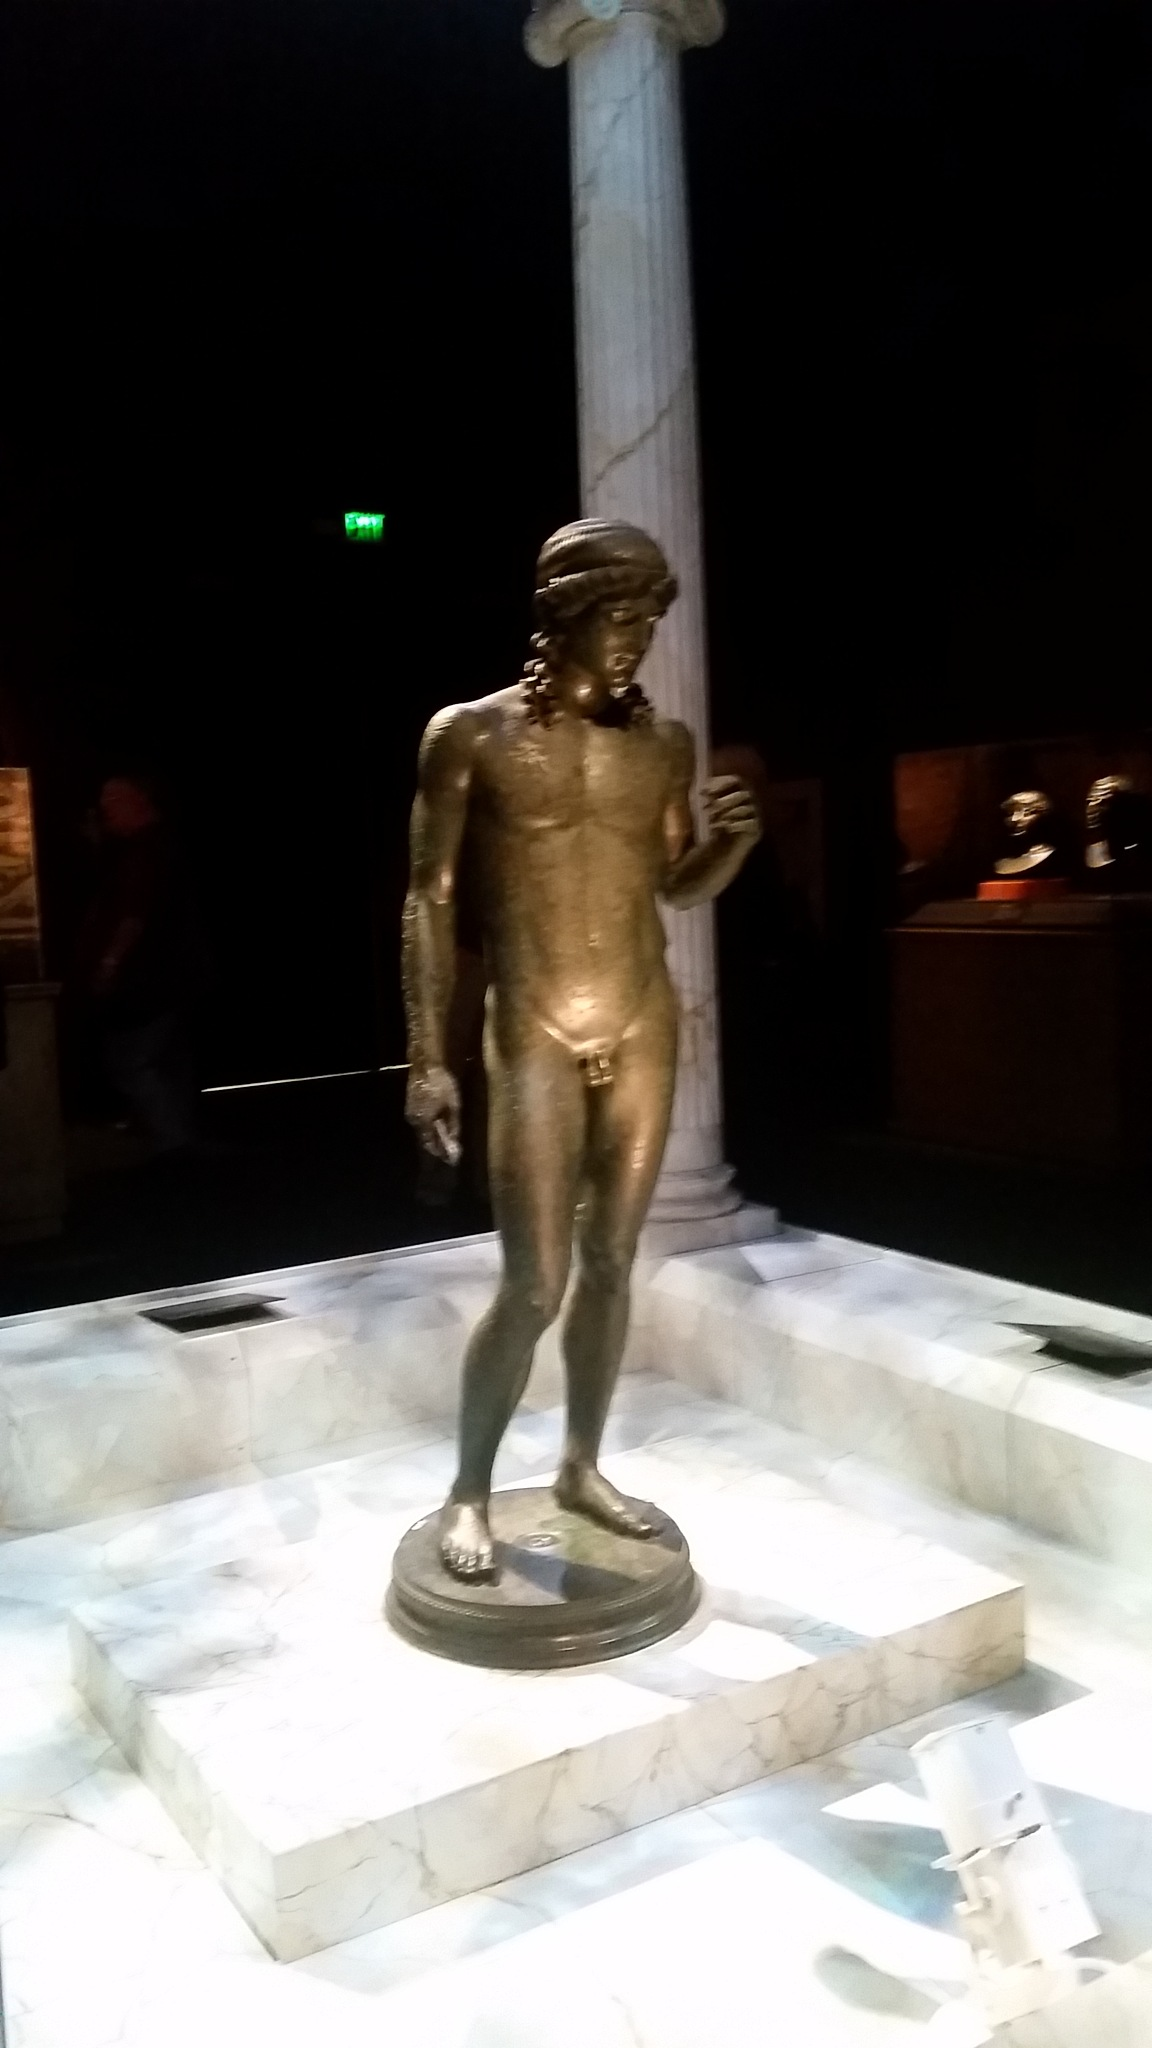 Statue from 79 ad Pompeii exhibit by B56